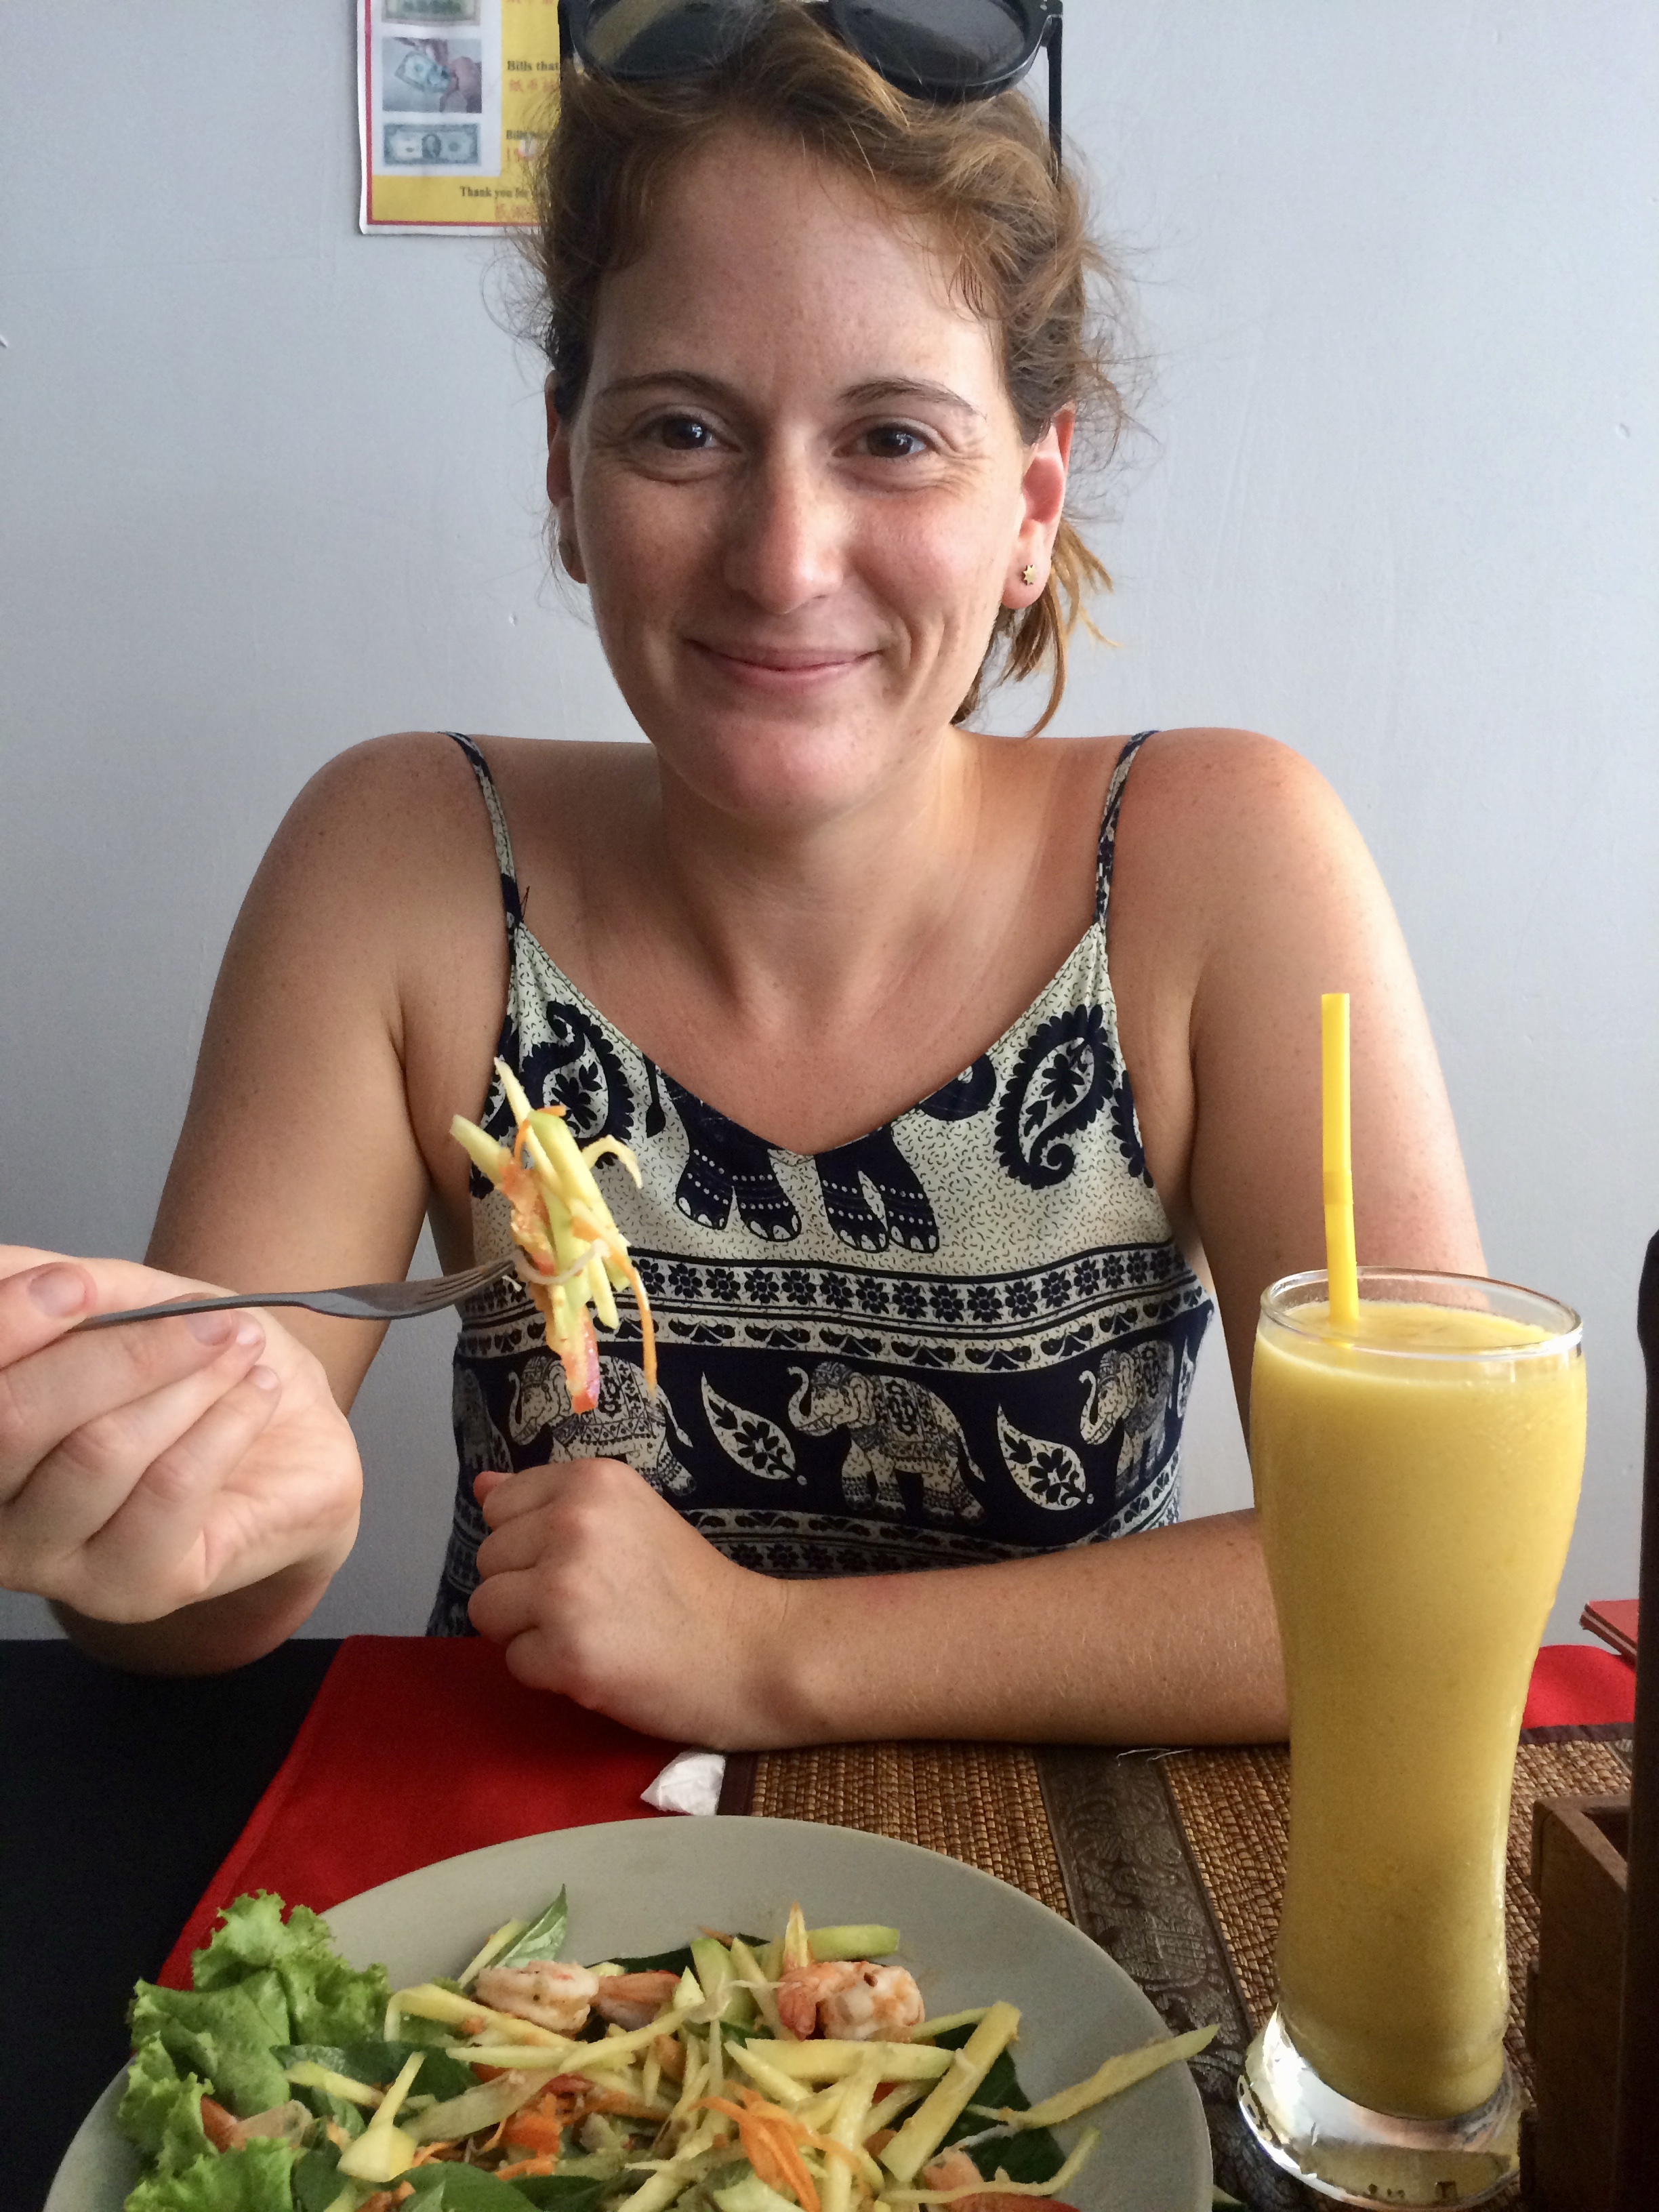 Lunch of fresh papaya salad and a mango smoothie in Siem Reap, Cambodia.